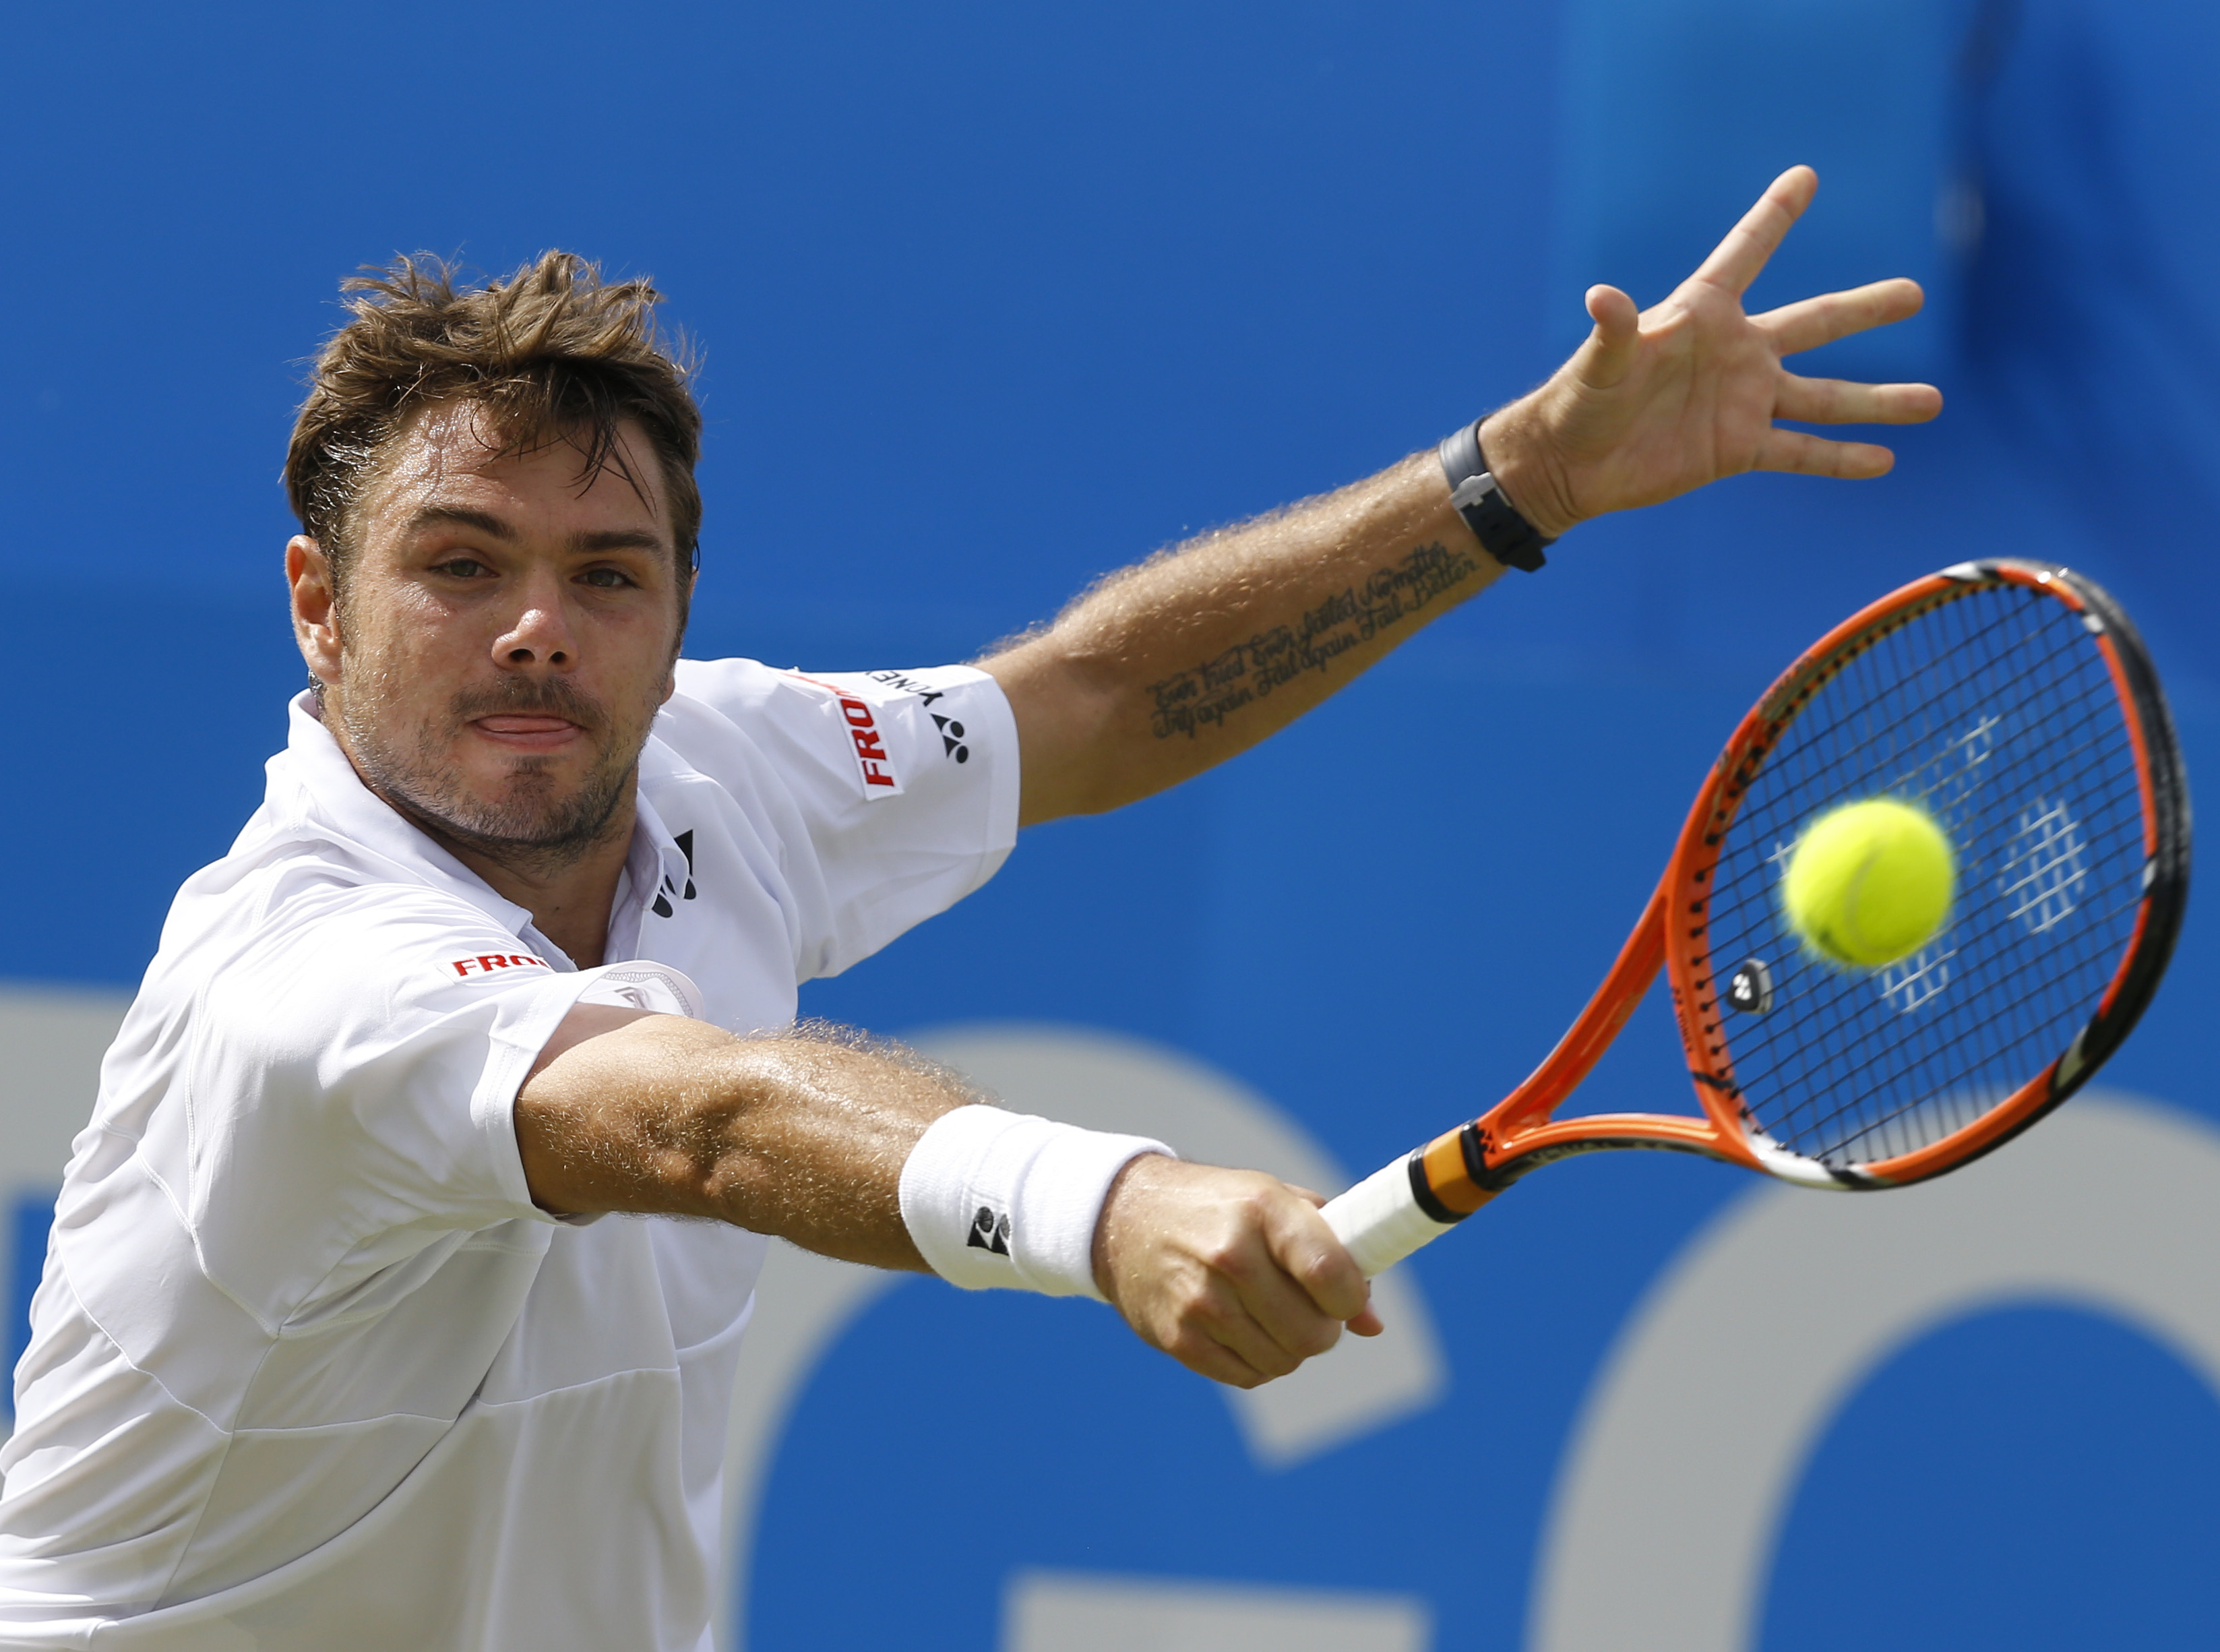 Switzerland's Stan Wawrinka returns a shot to South Africa's Kevin Anderson, during their men's singles tennis match of  the Queen's tennis championship, in London, Wednesday, June 17, 2015. (AP Photo/Kirsty Wigglesworth)